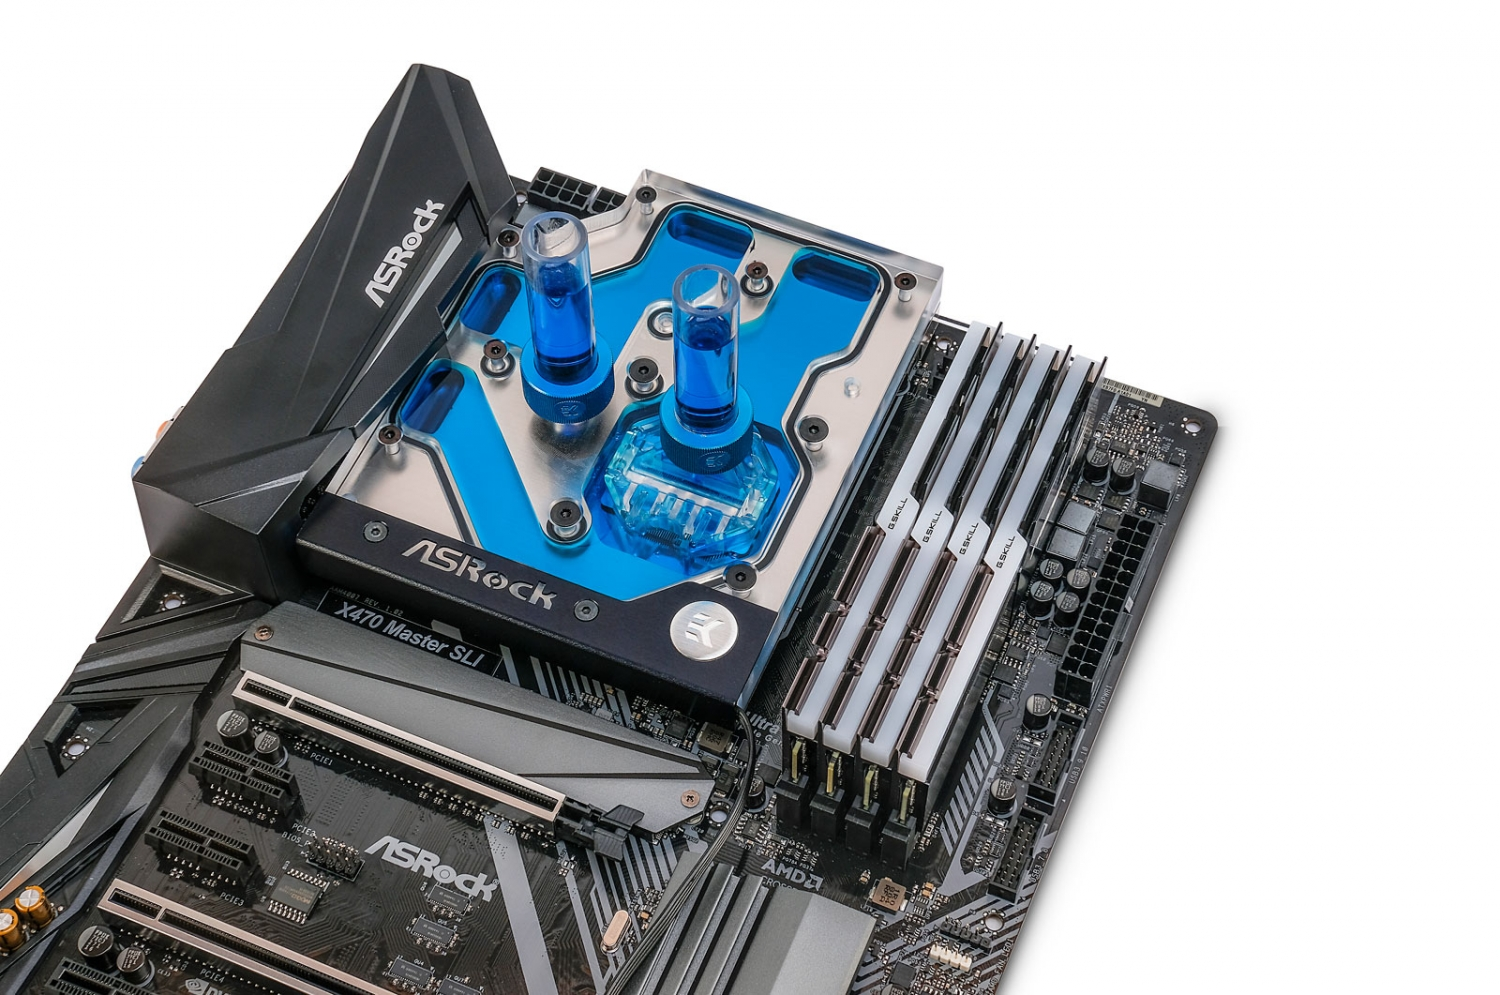 EK Releases New AM4 Monoblock For ASRock Fatal1ty X470